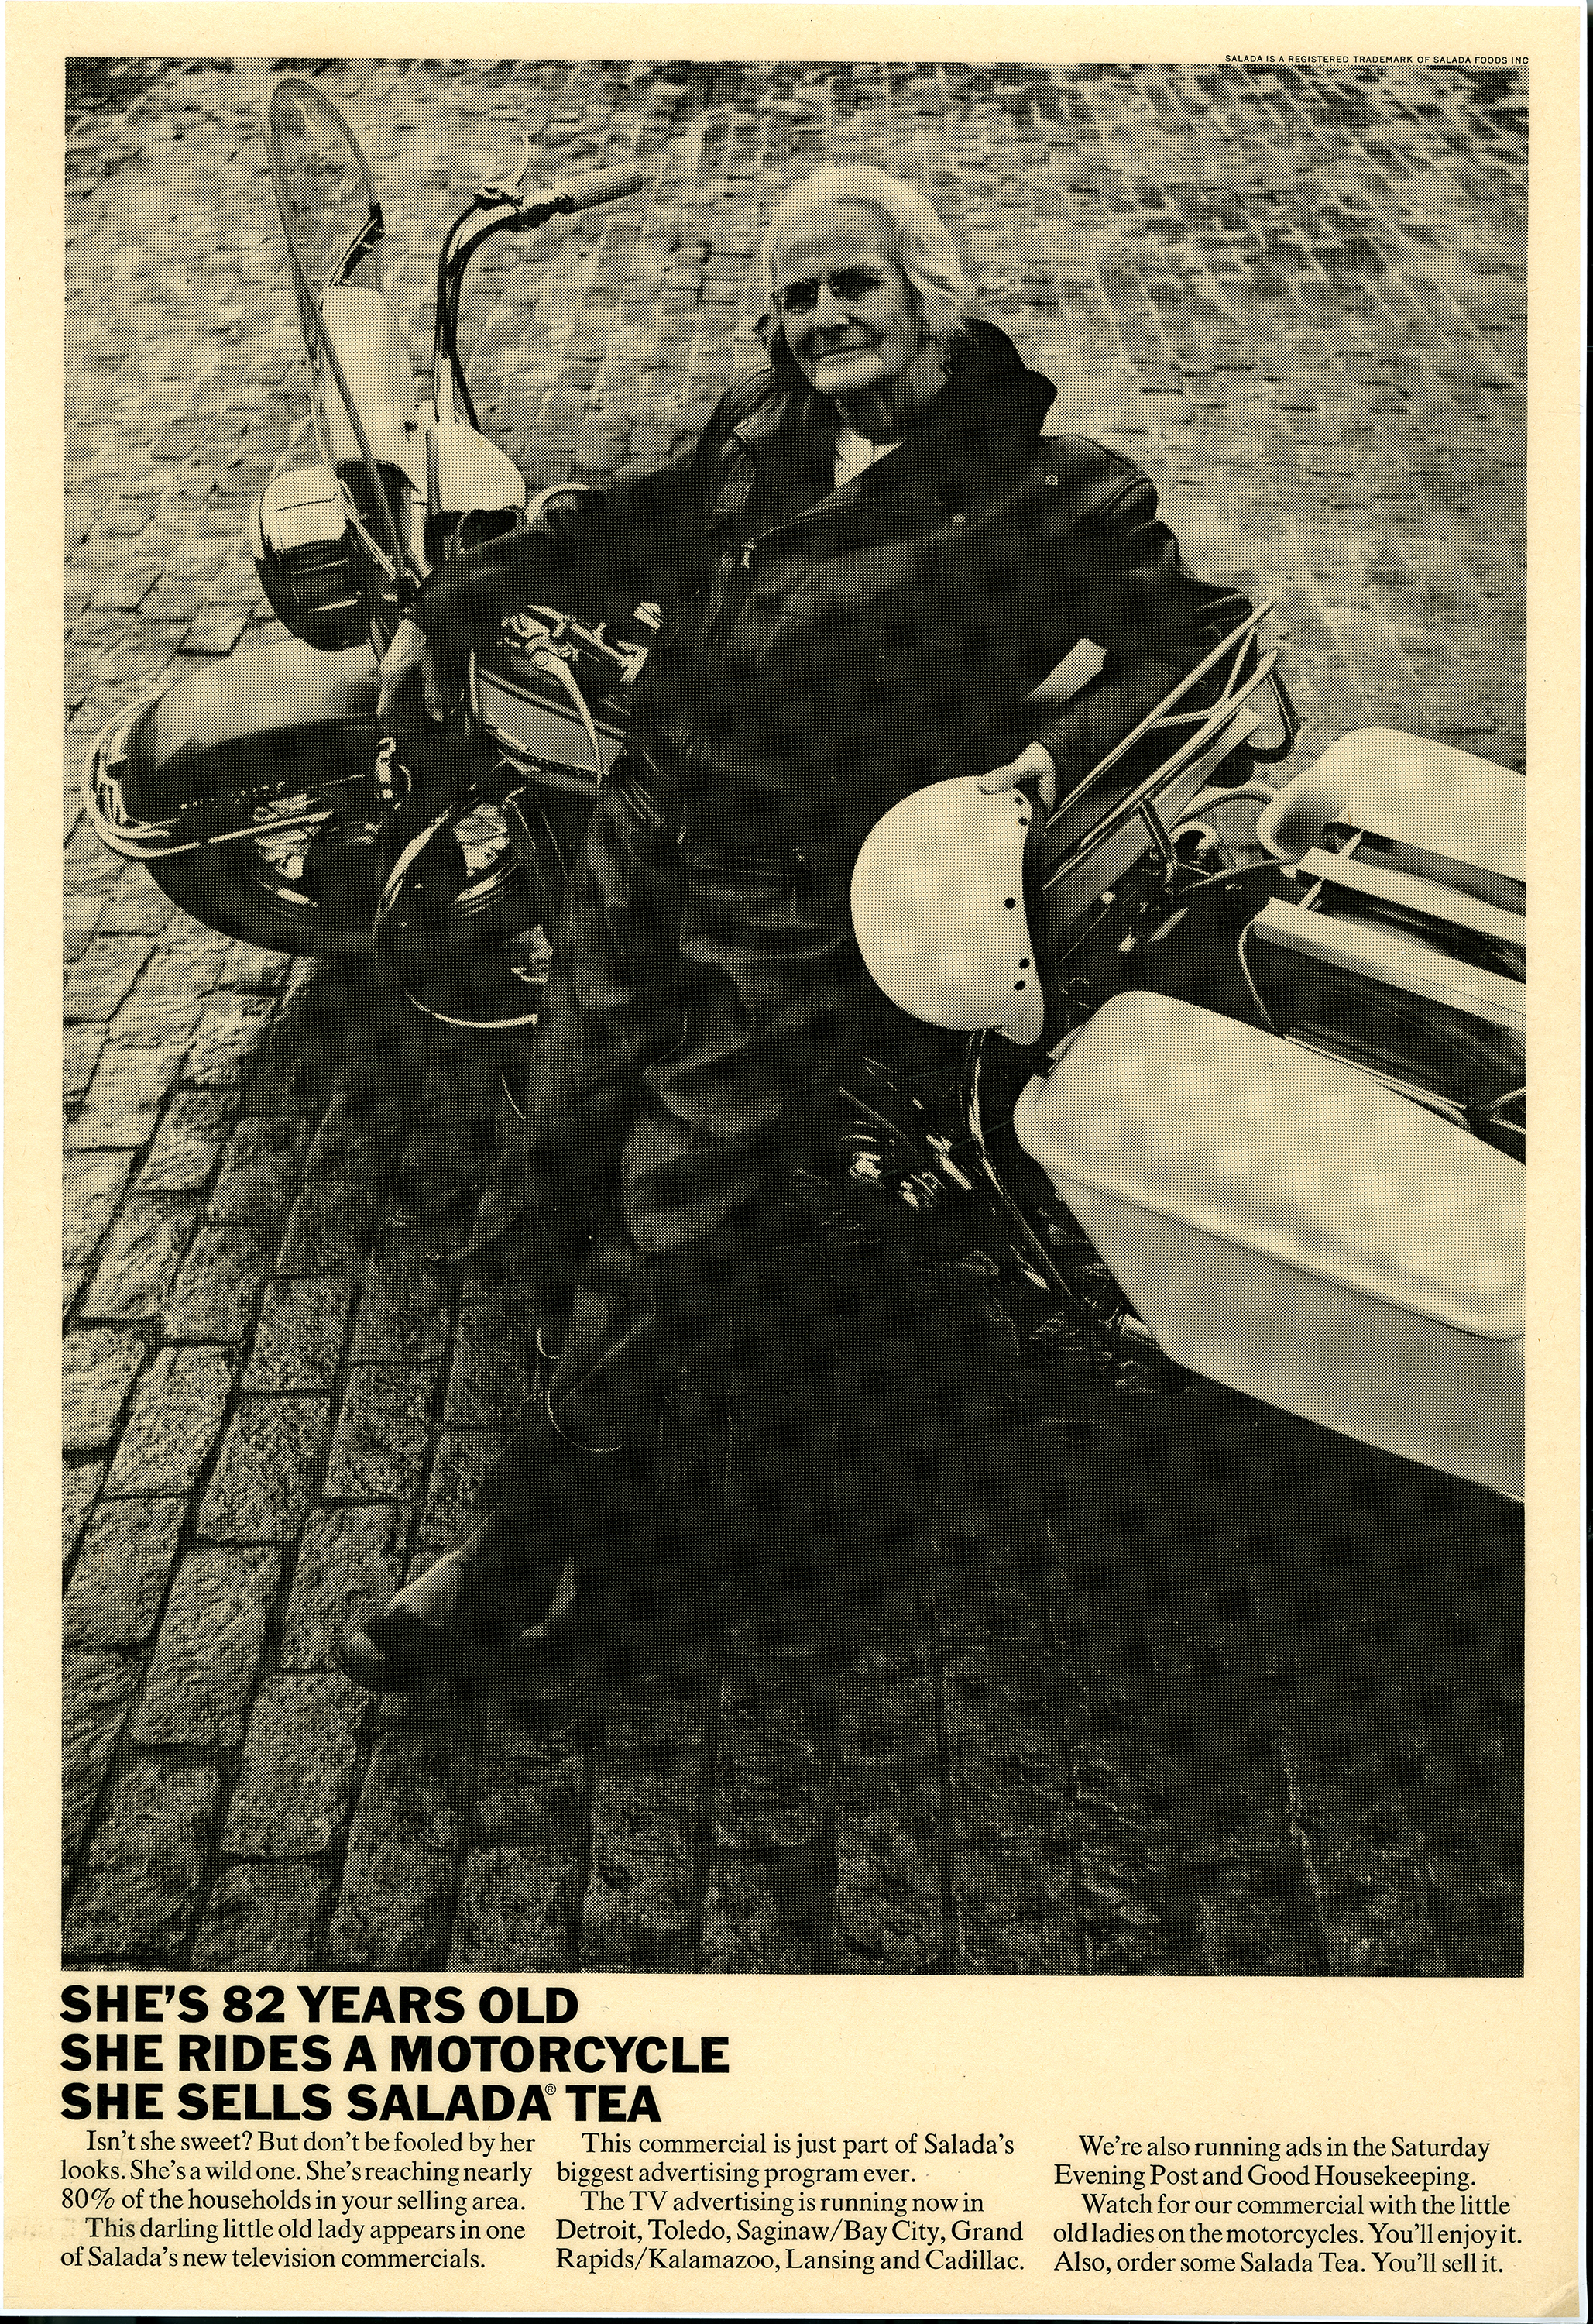 Black and white photograph of an elderly woman in a leather jacket leaning against a motorcycle.